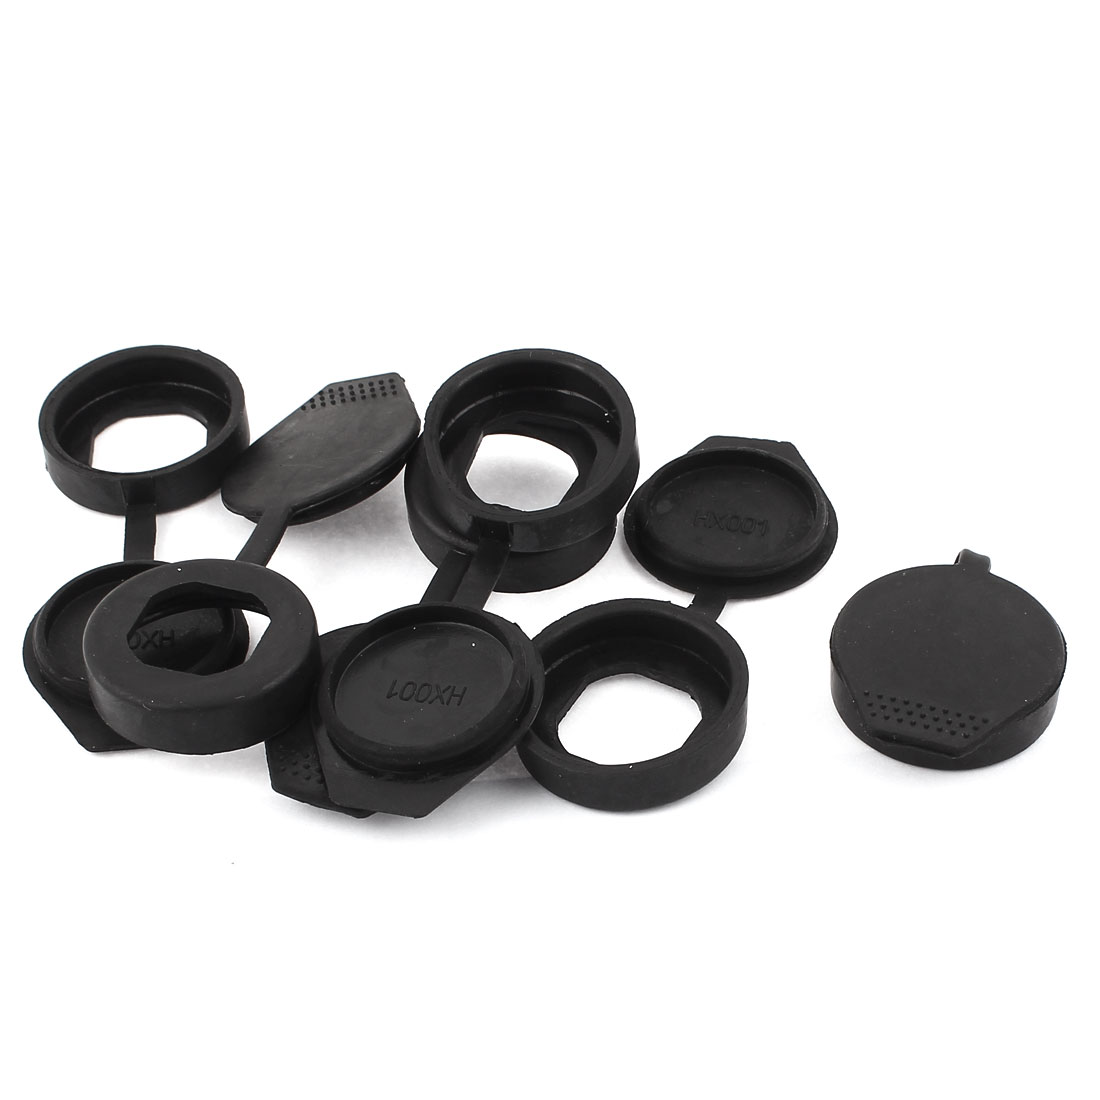 Key Panel Rubber Cam Lock Dust Cover 35mm Out Dia Black 6pcs